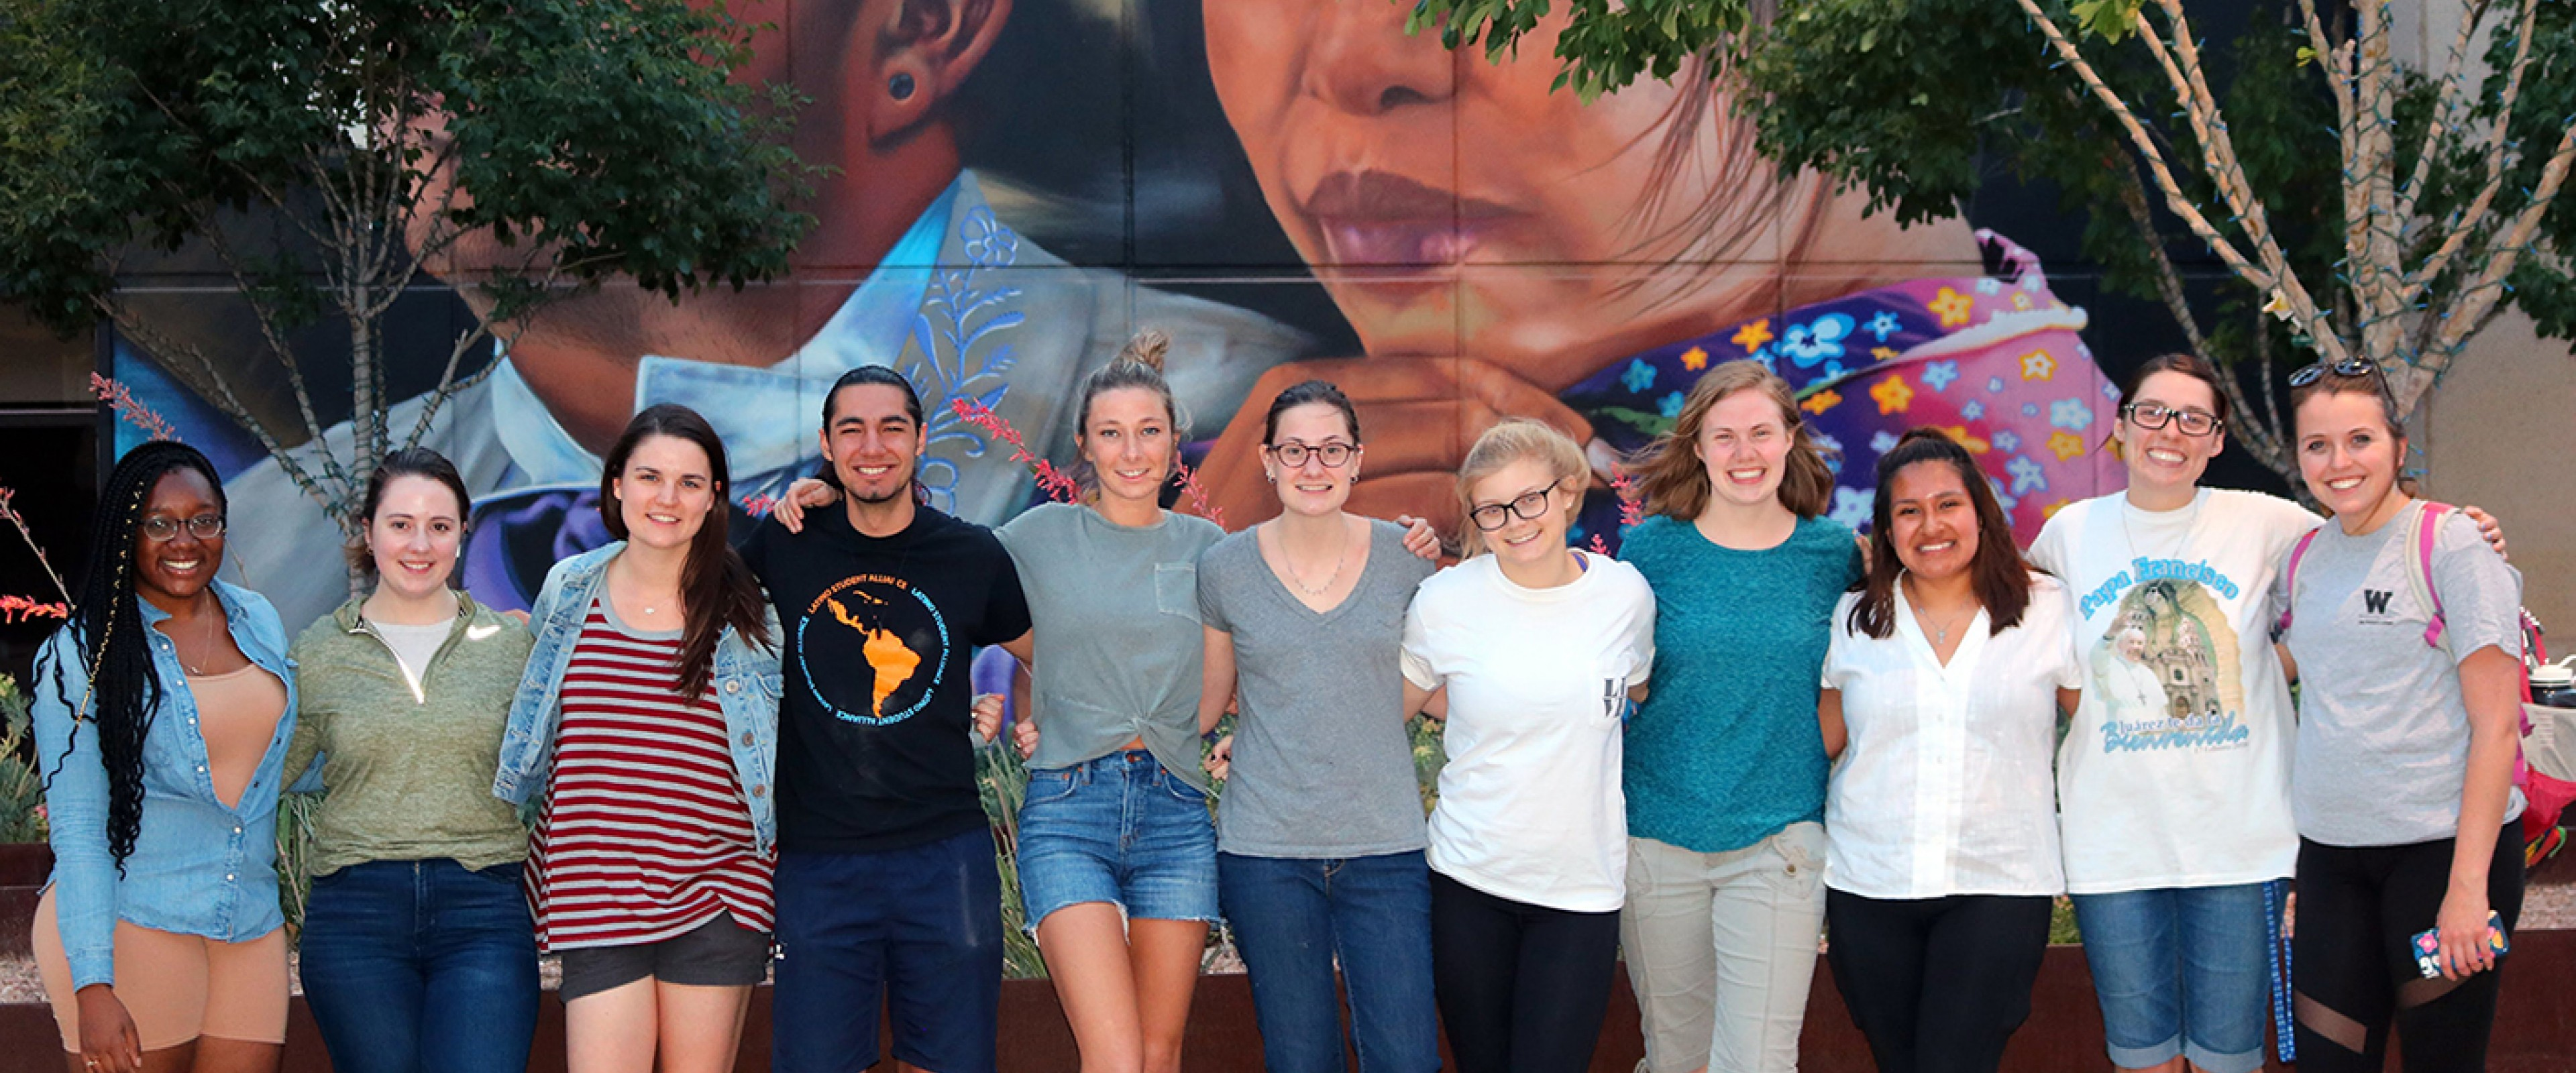 Honors students linking arms in front of a mural.